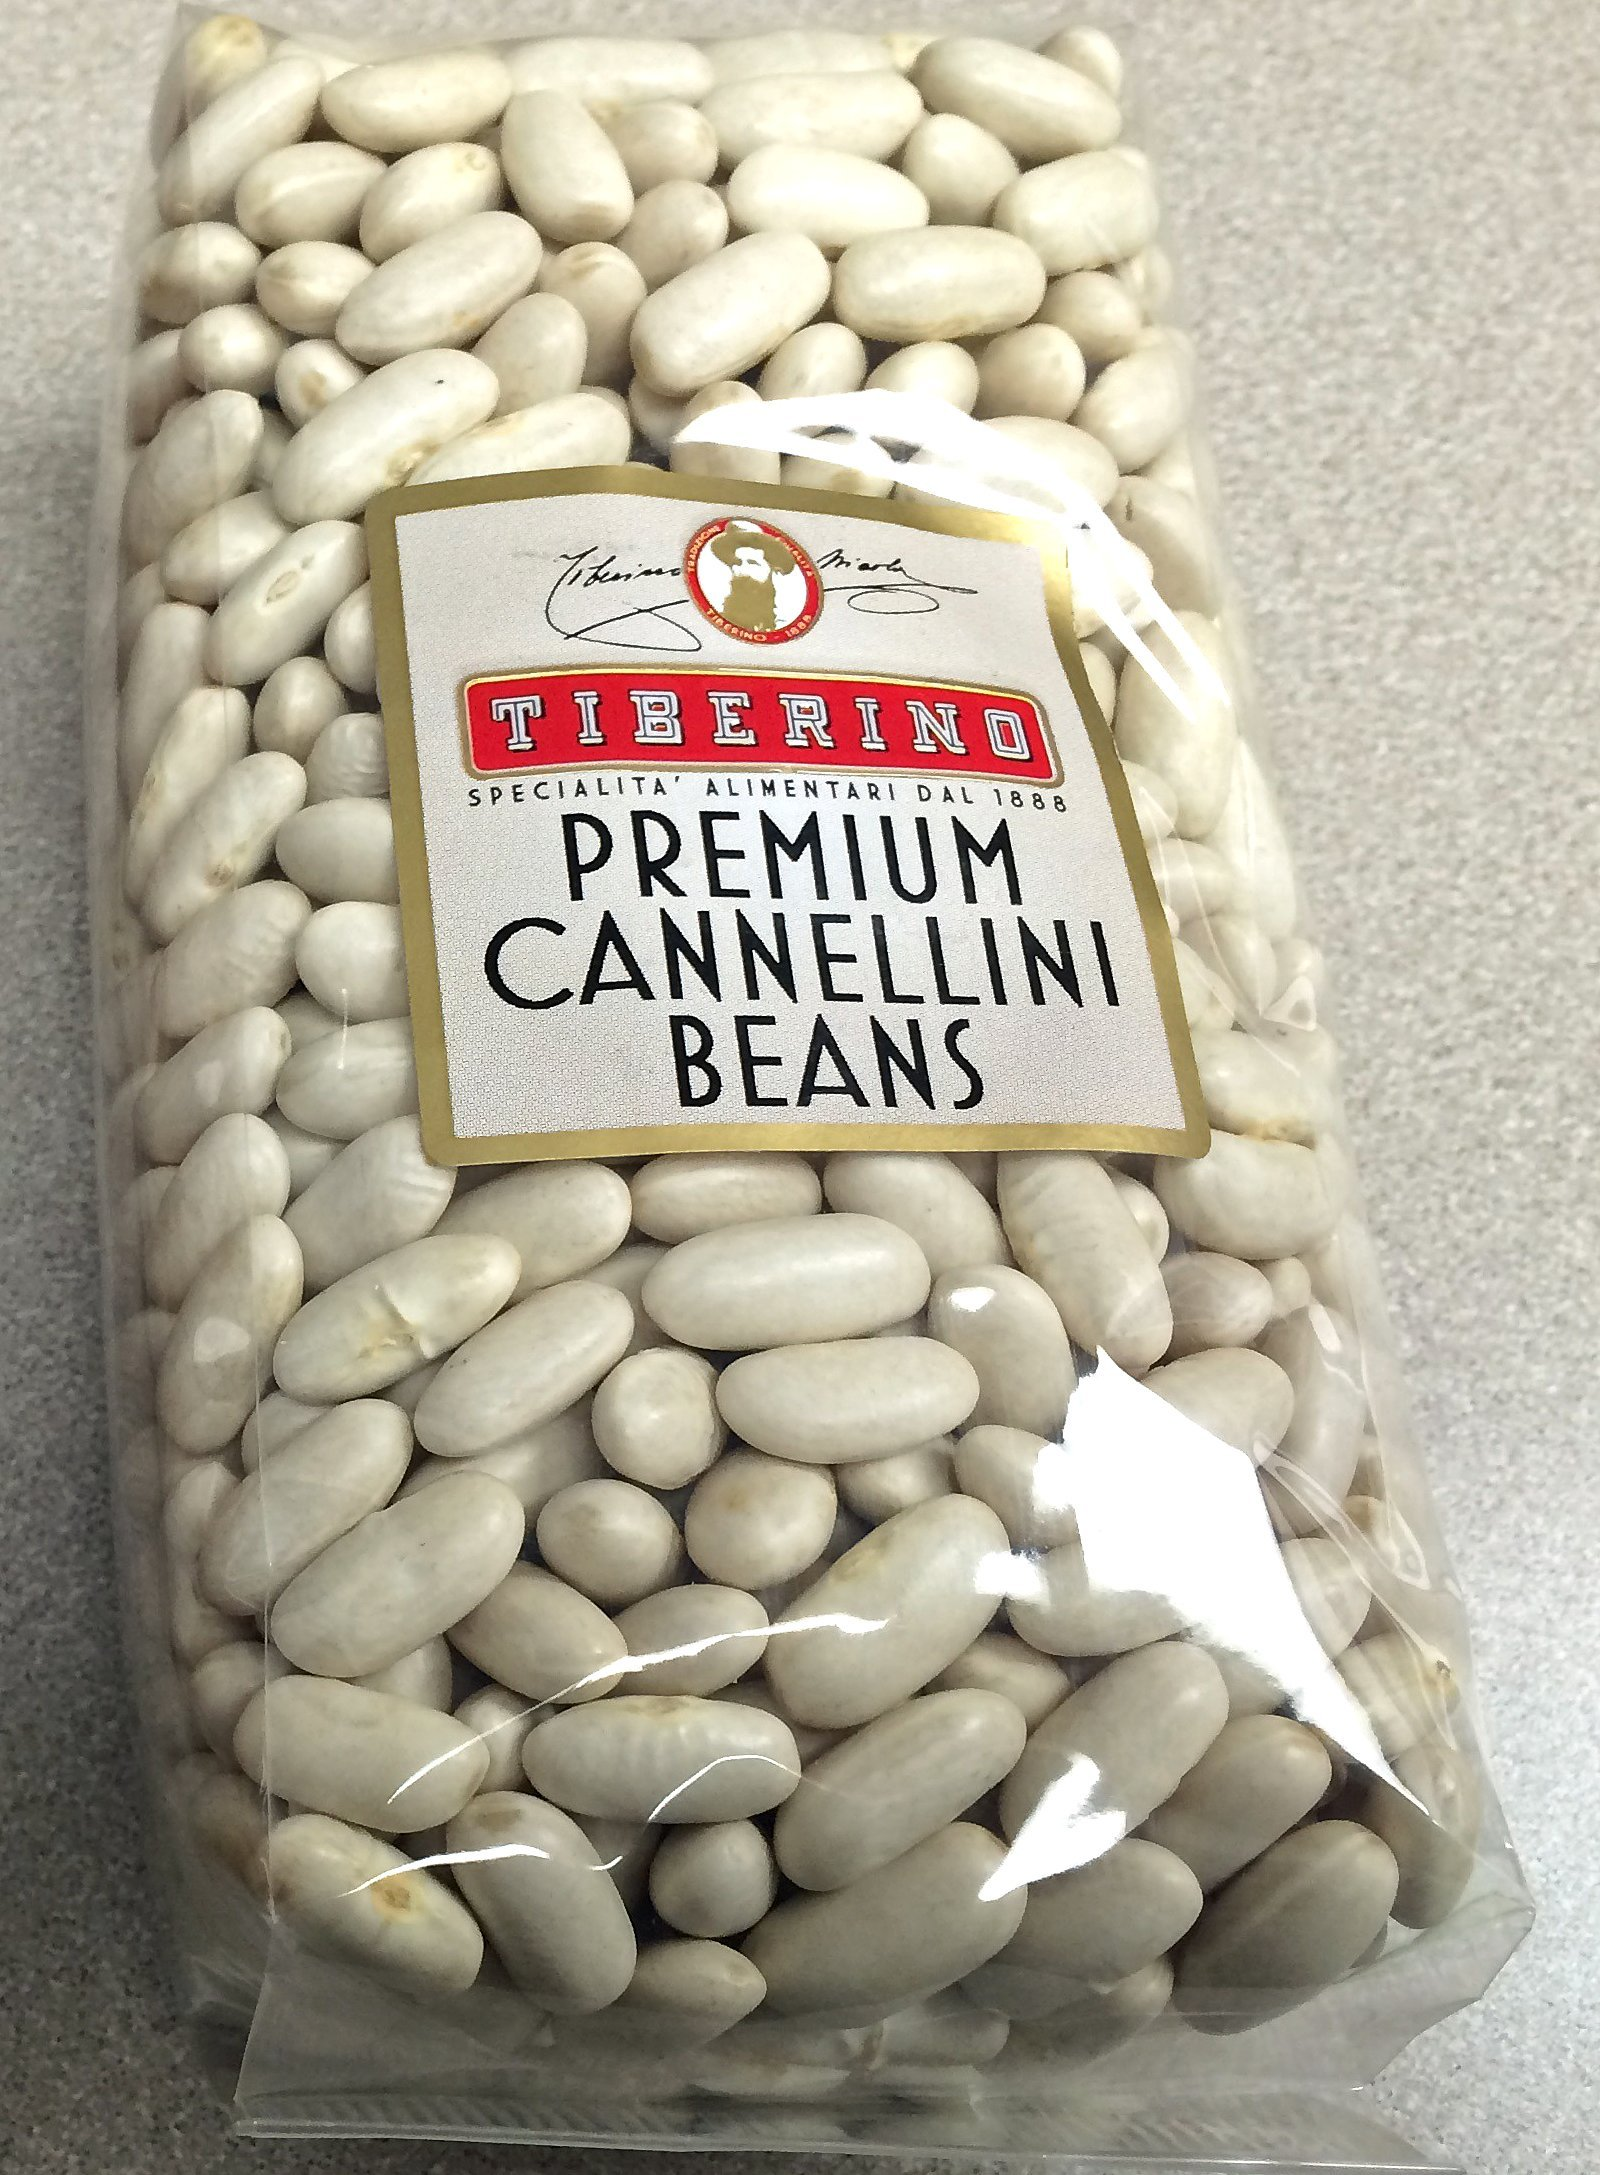 Premium Cannellini Beans-Imported from Italy by Tiberino